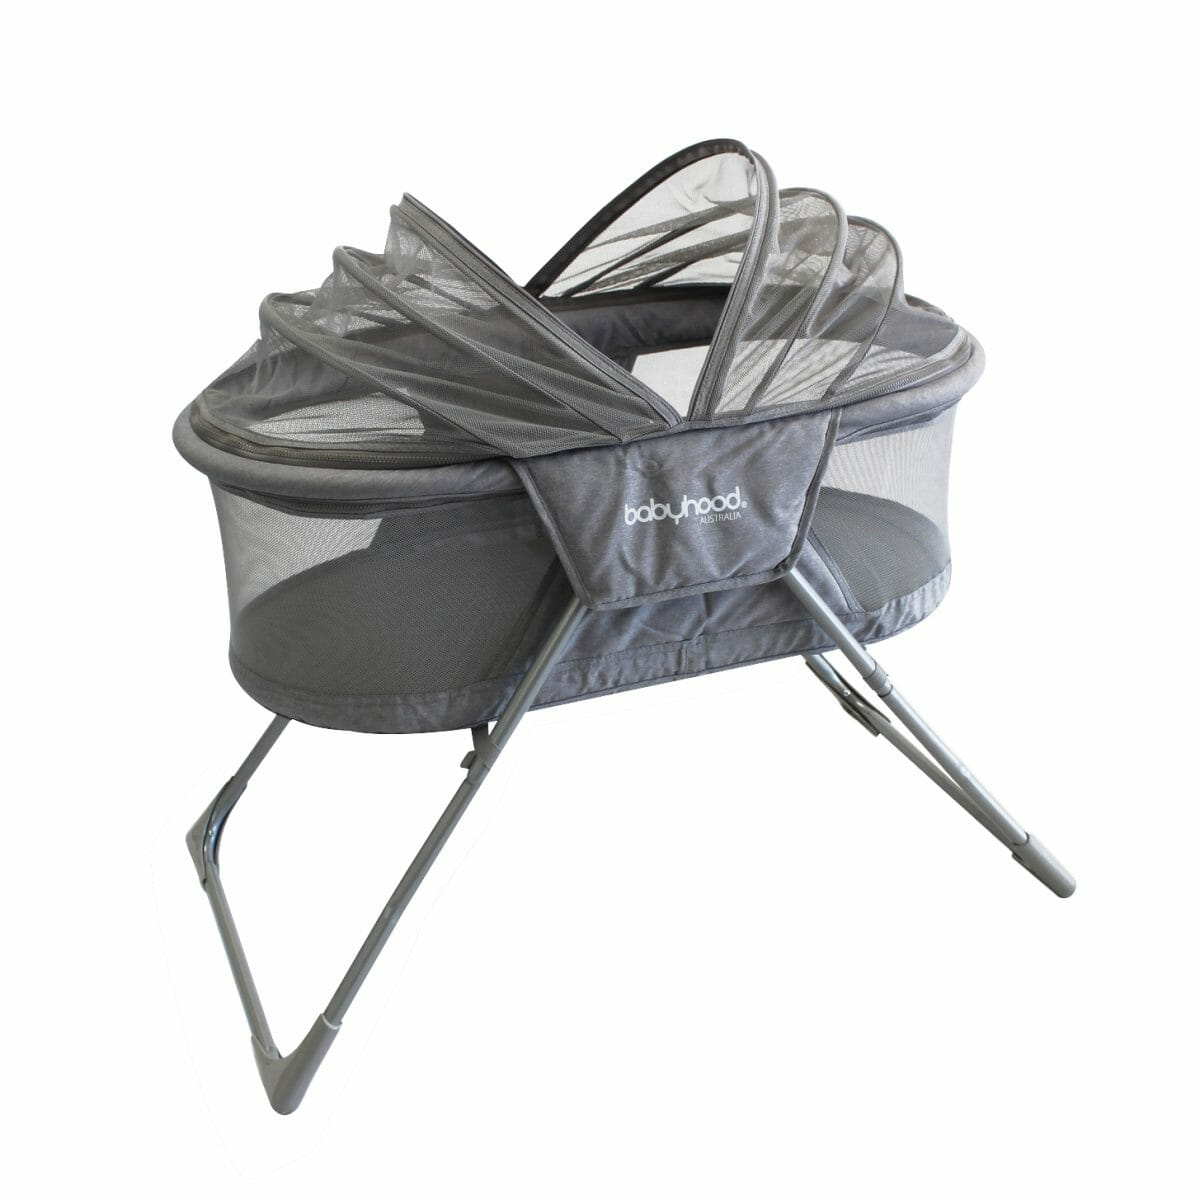 Babyhood Travel Bassinet Shade Opening